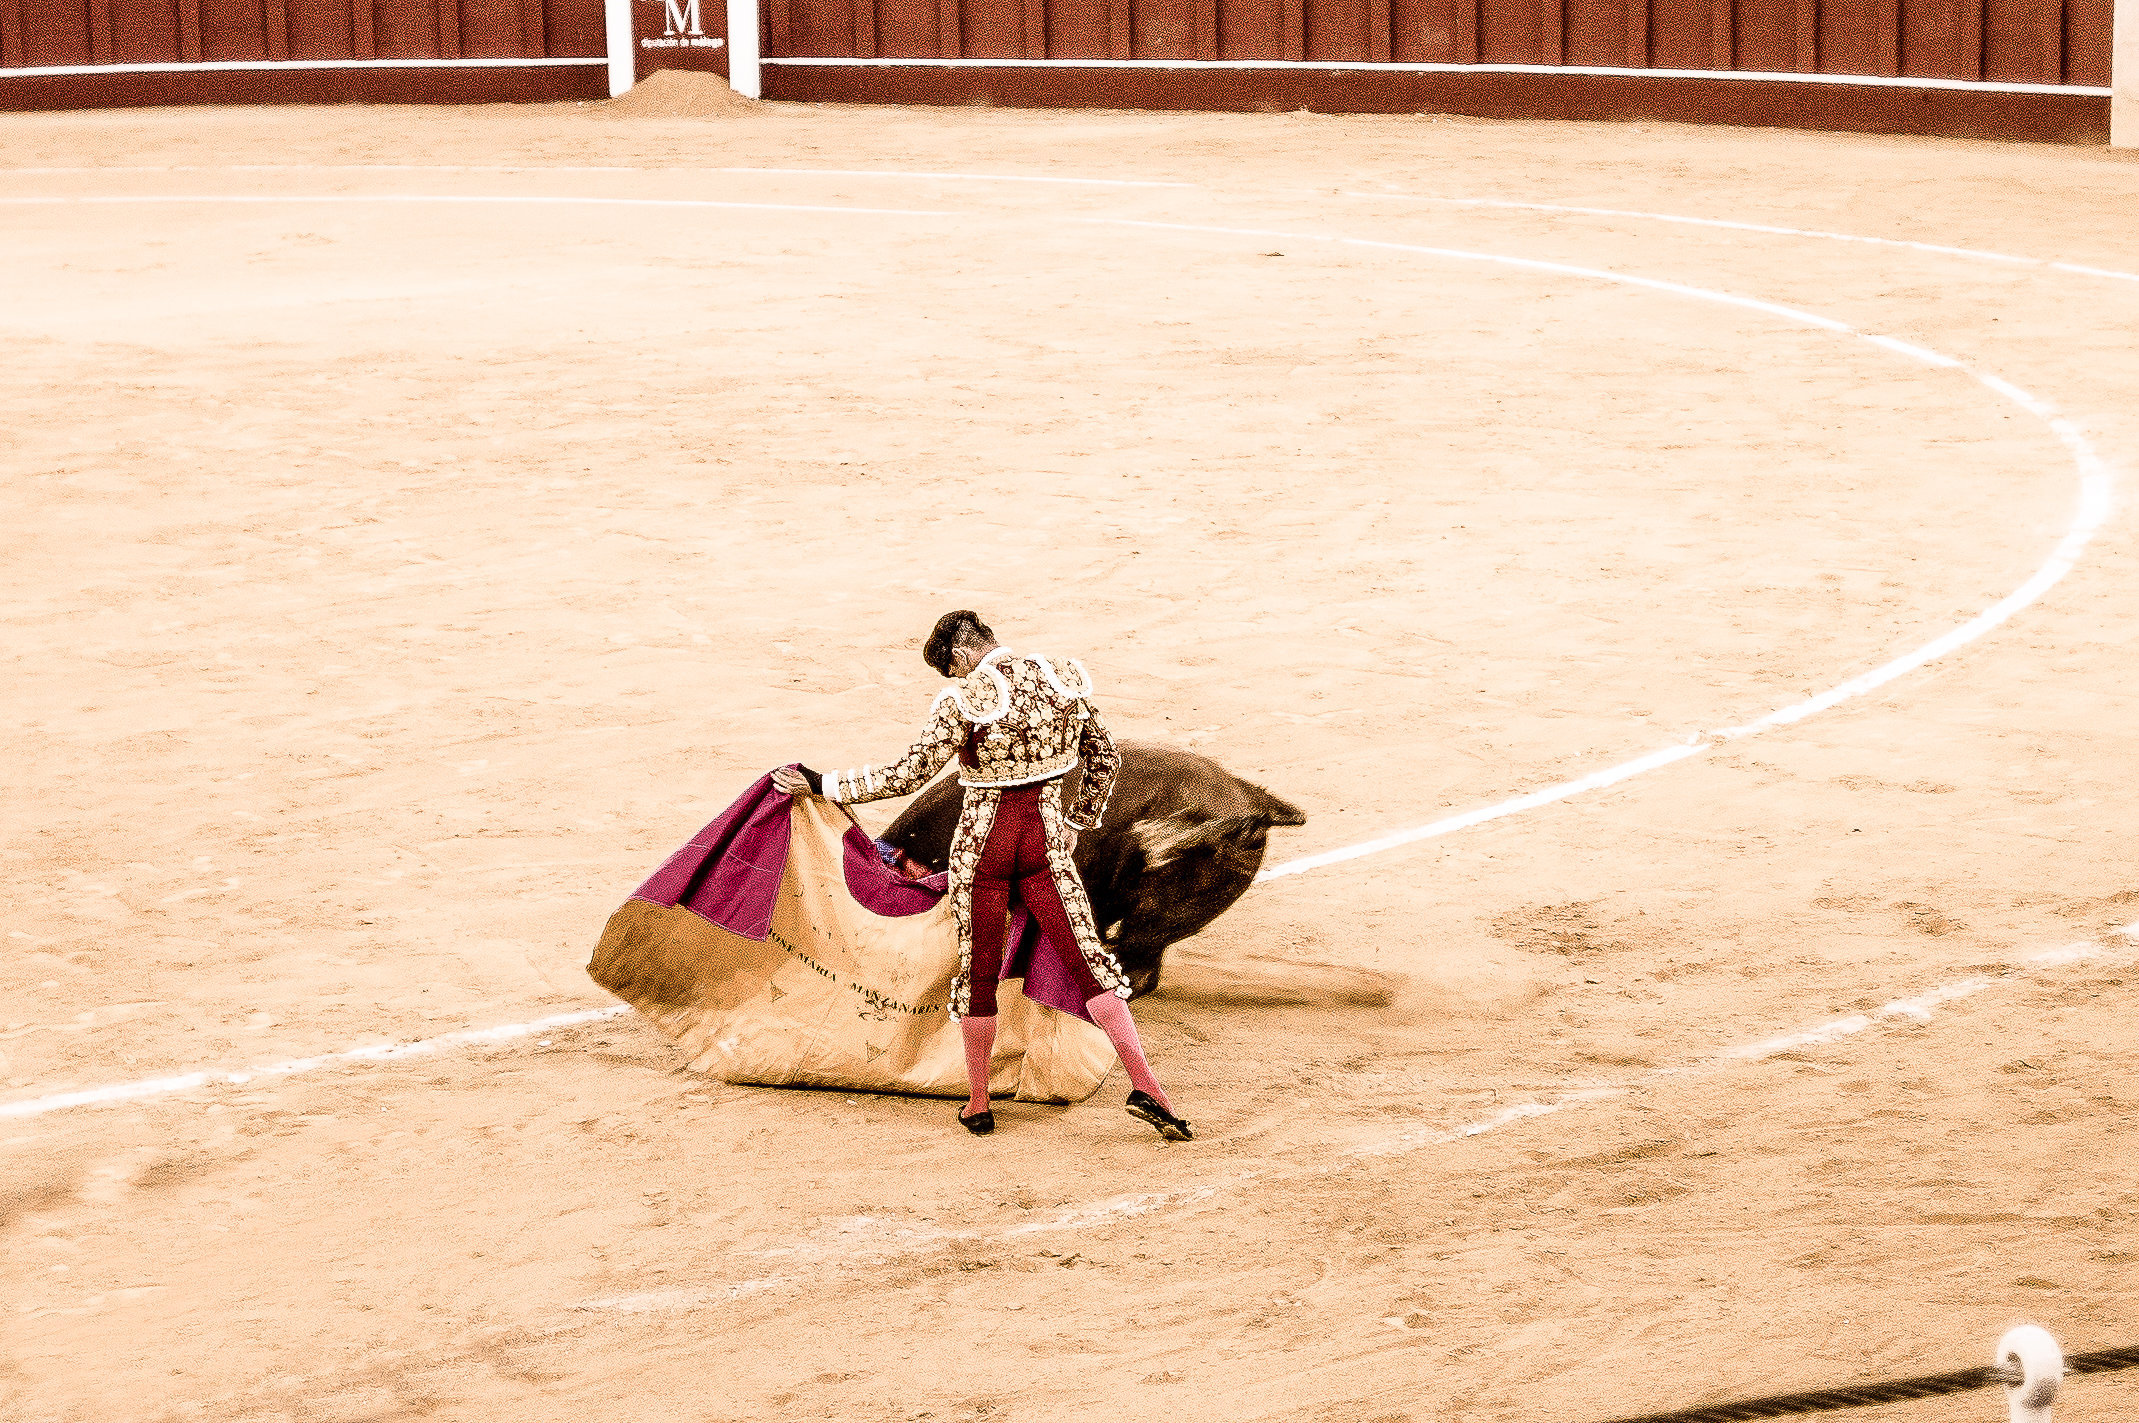 The Bullfight-194-bewerkt.jpg